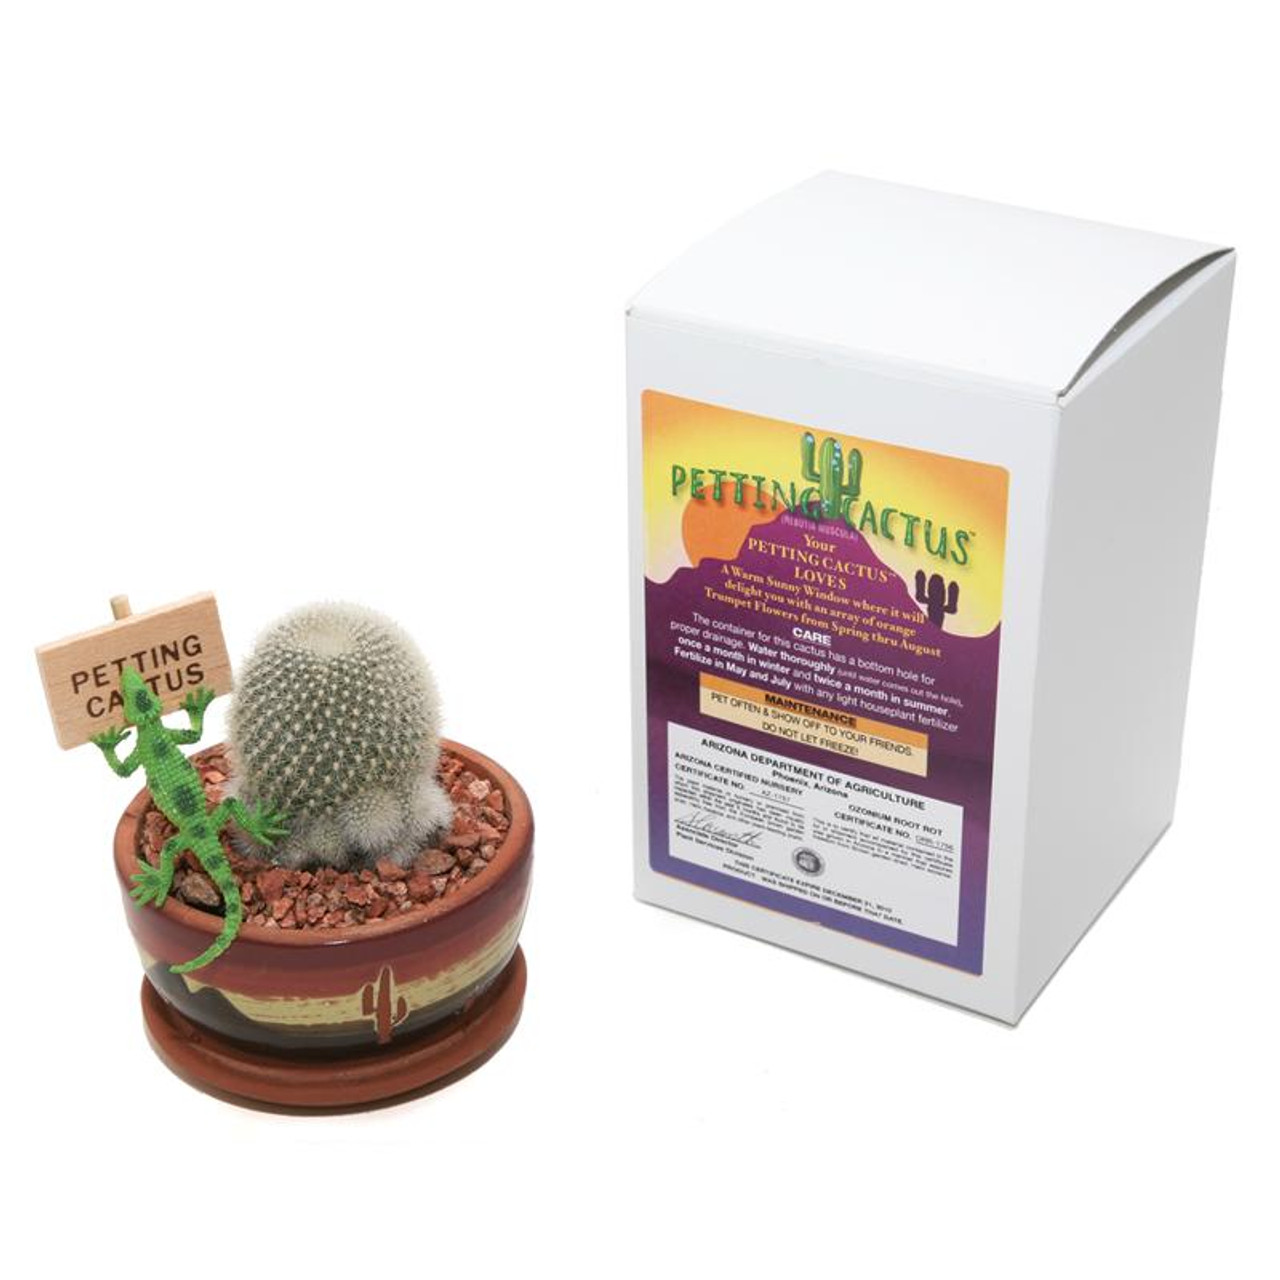 Petting Cactus Silver - 3.5 inch